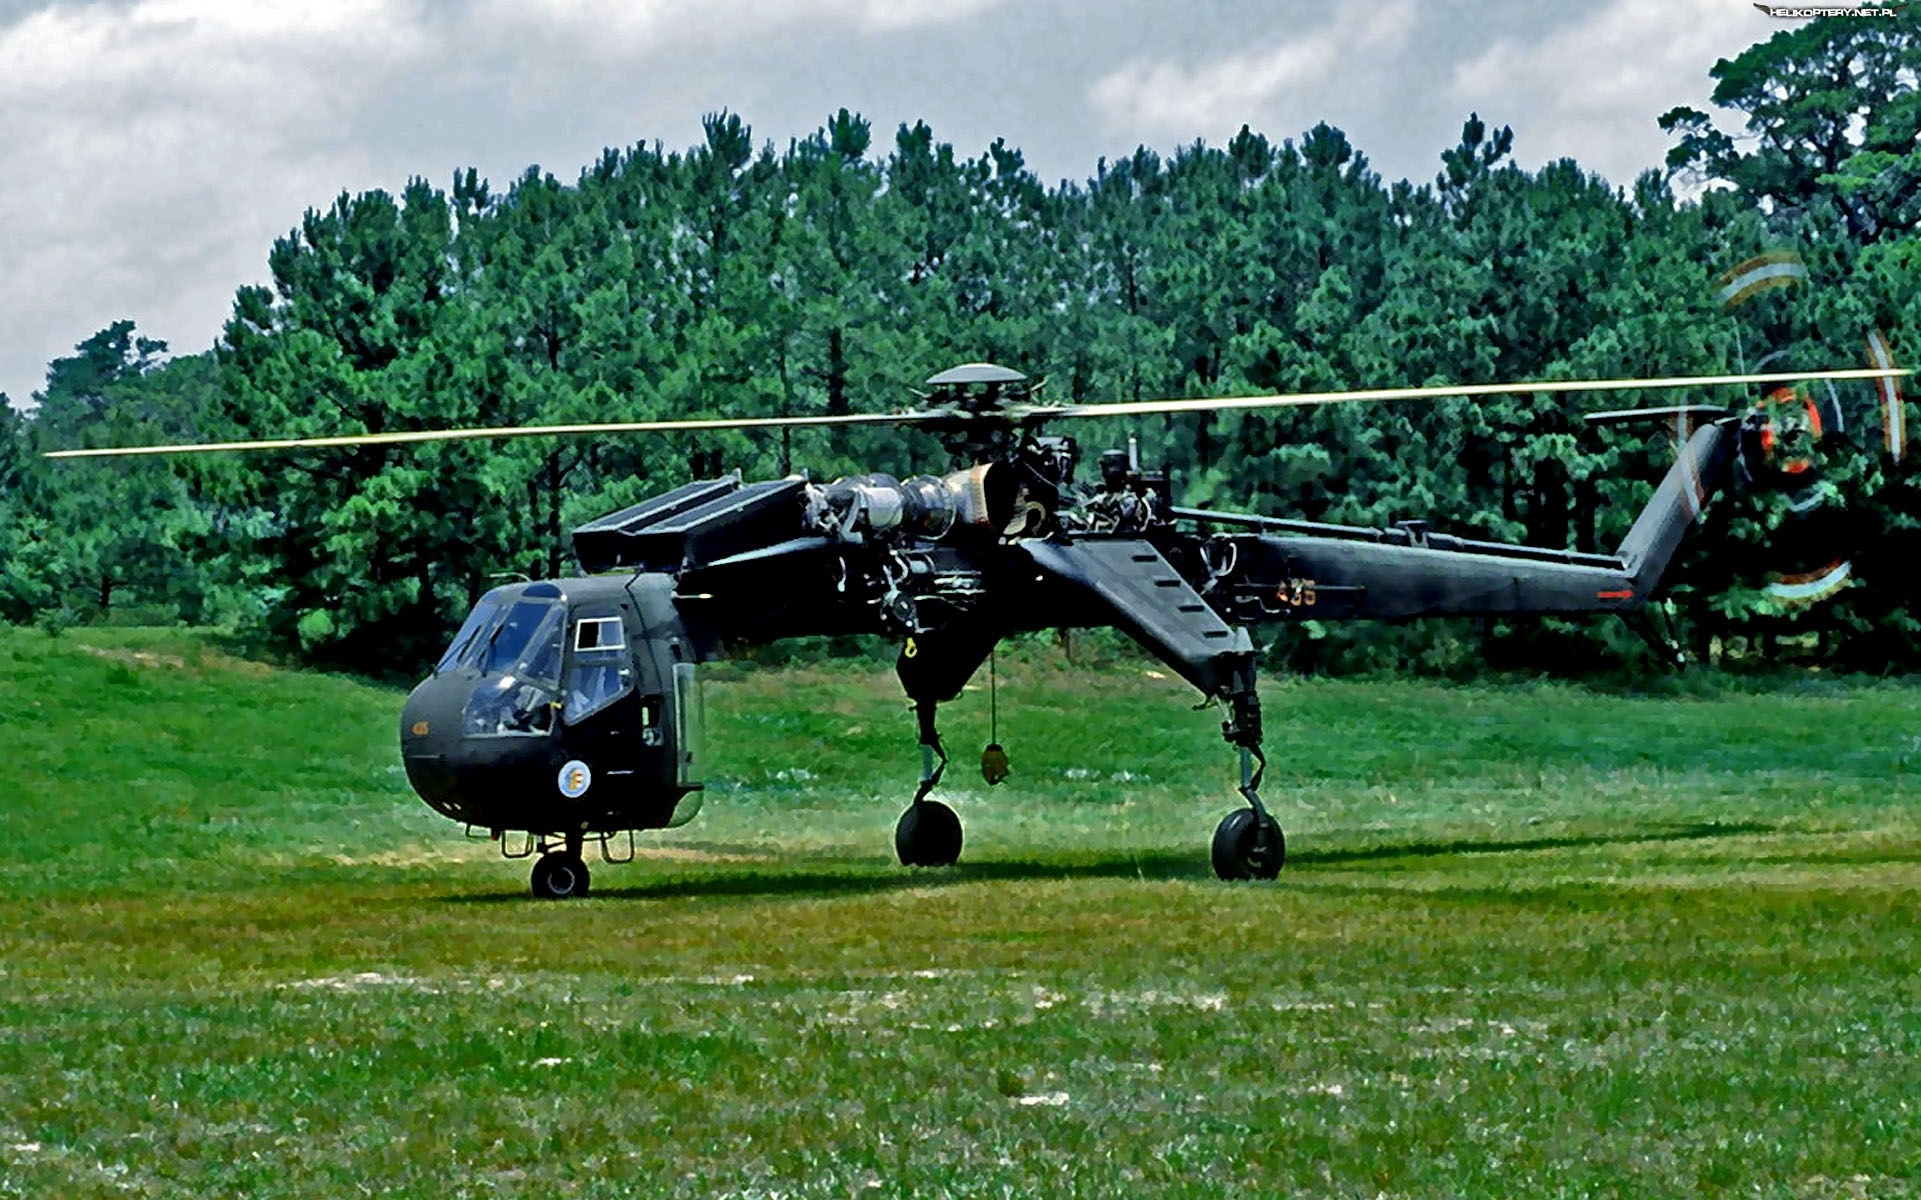 Sikorsky CH-54 Tarhe, Transportowy, Helikopter